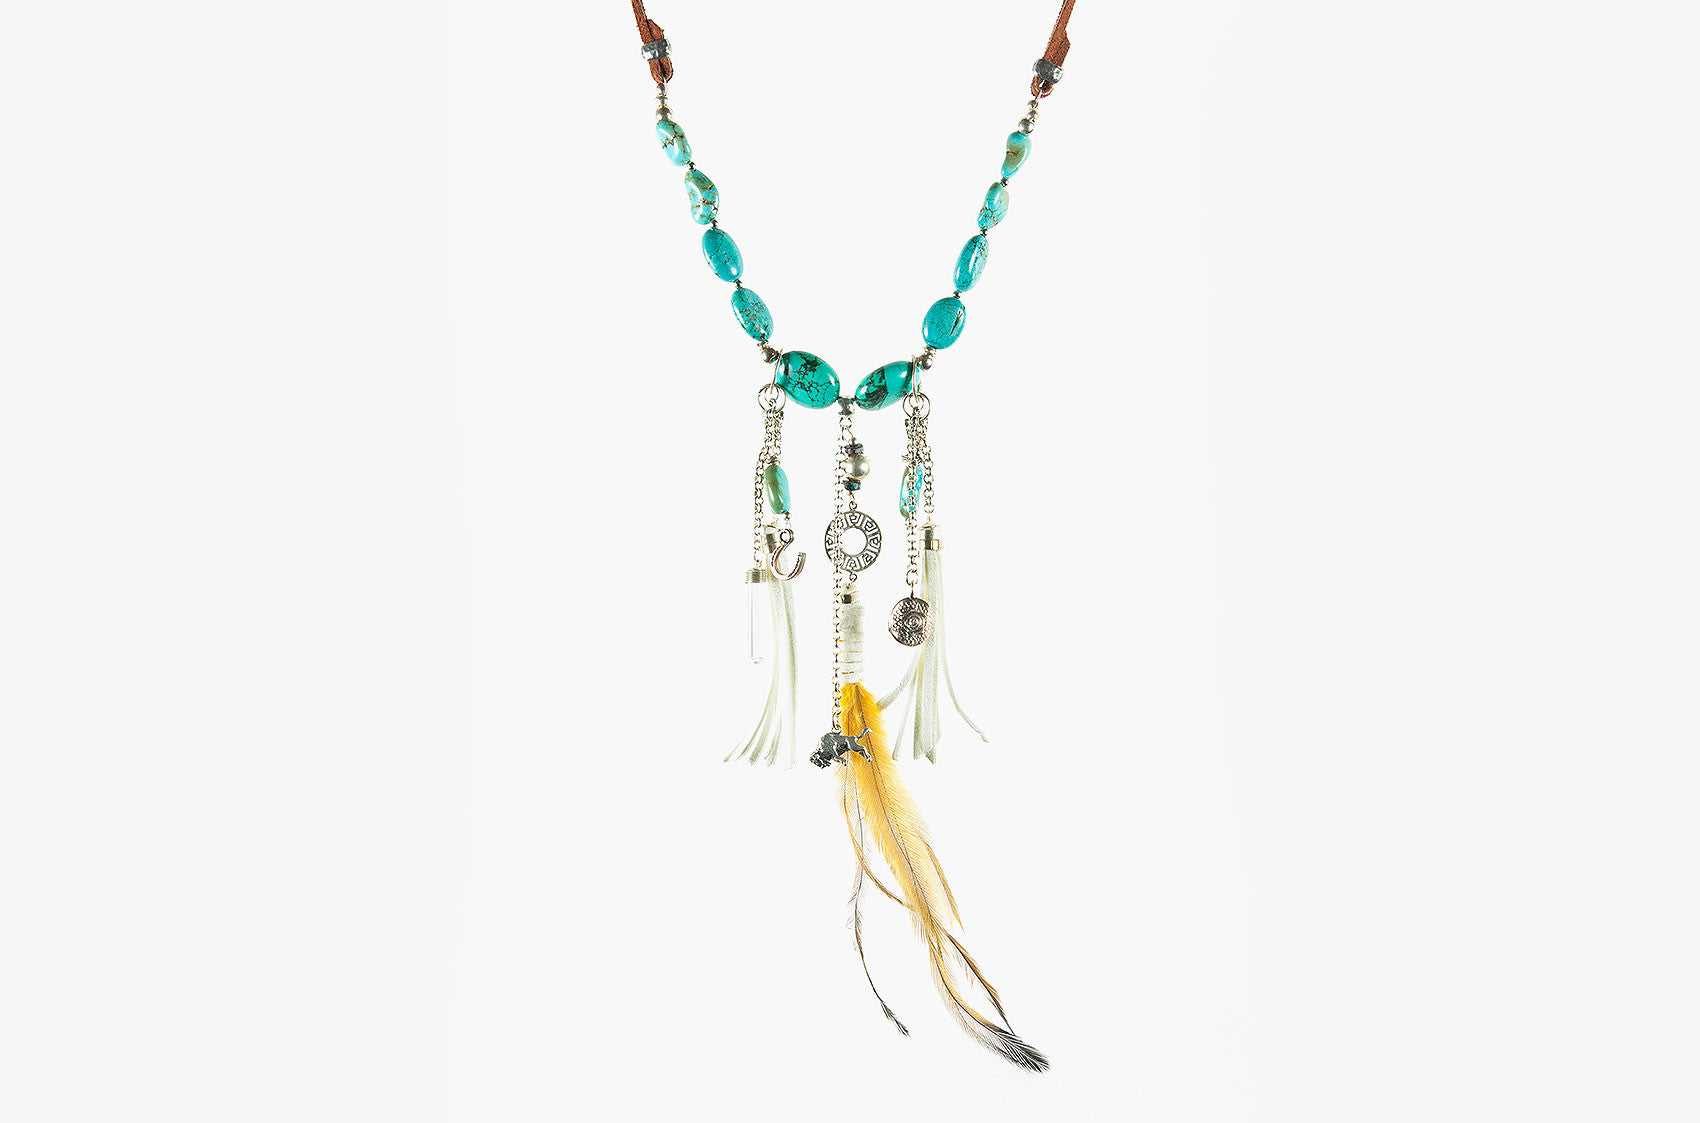 Buffalo Girl Spirit Dreamer necklace